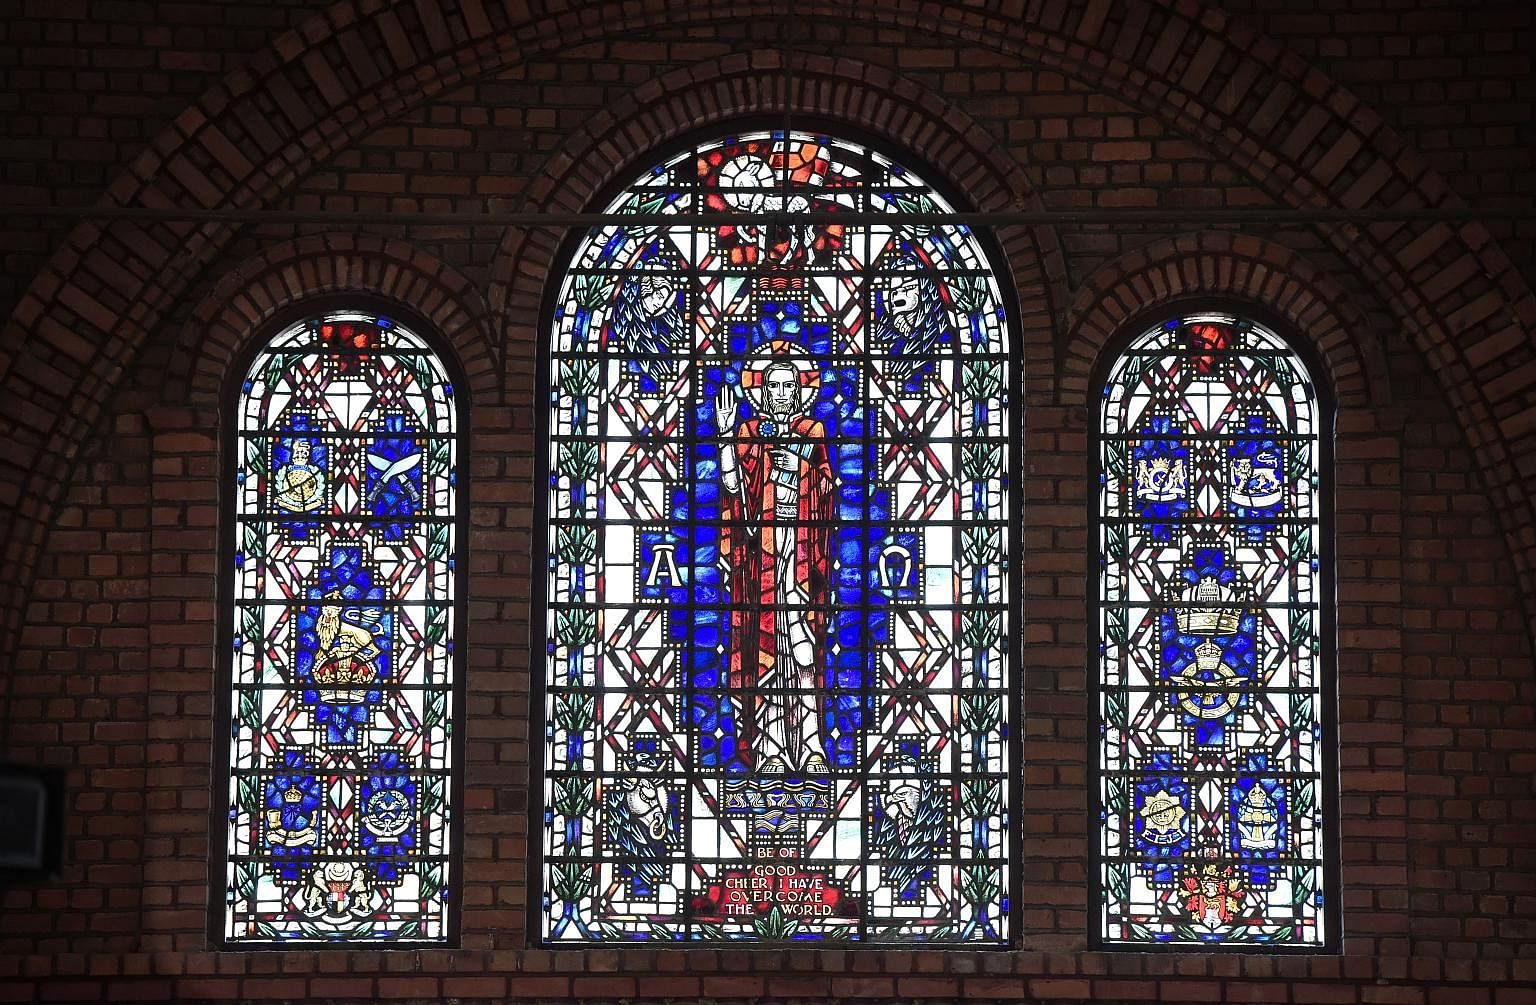 Stained glass windows bearing the image of Christ and the badges of the various regiments and forces that fought for the British in Malaya and Singapore.